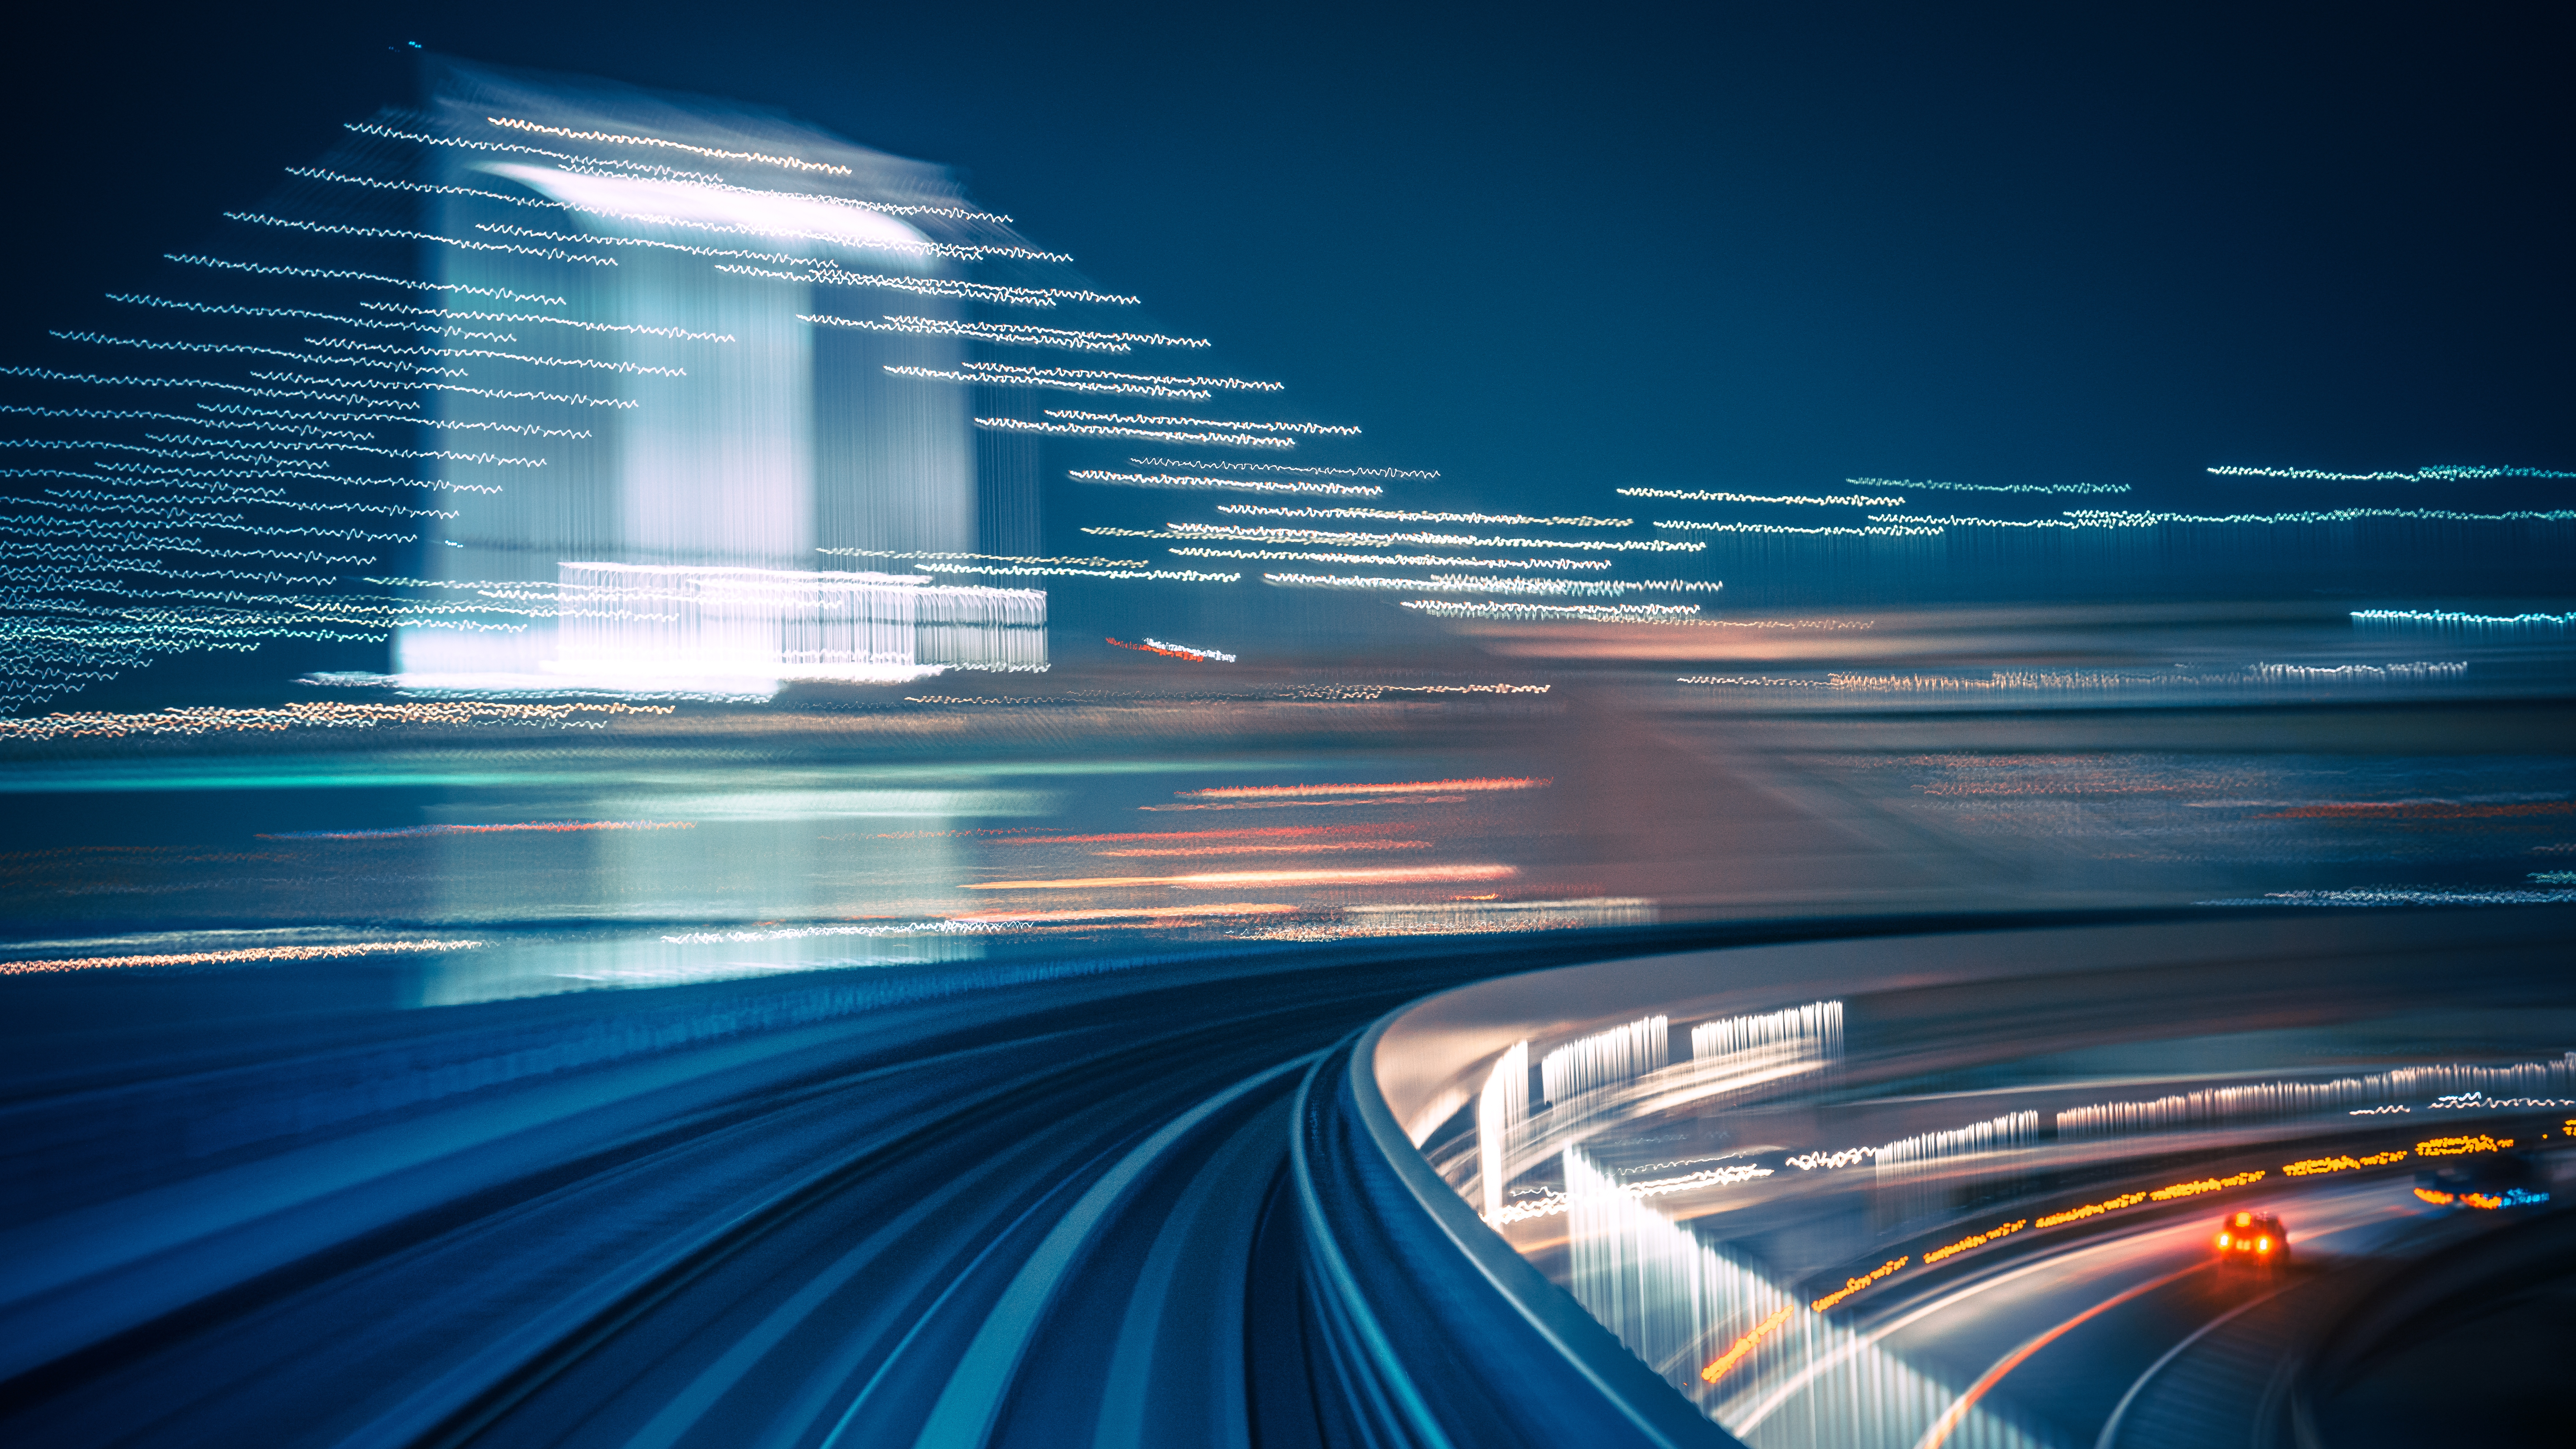 Long exposure shot from a moving train